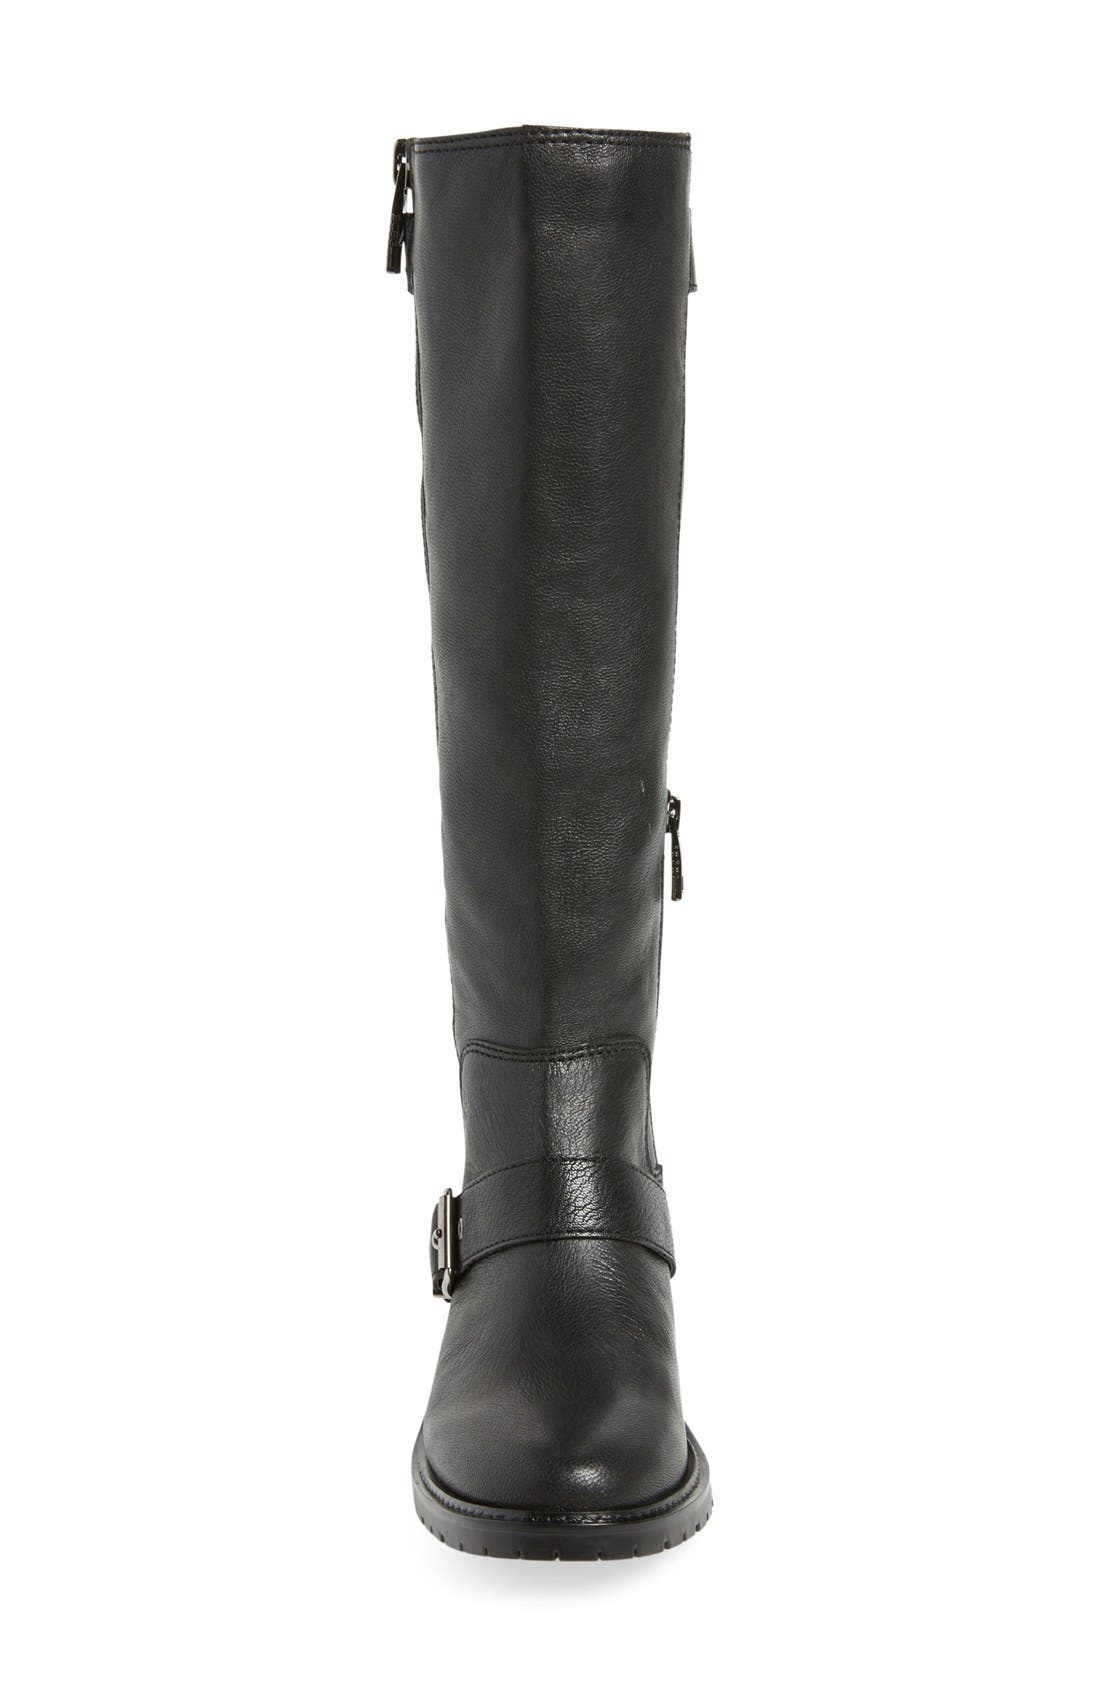 BCBGENERATION,                             'Shayna' Tall Riding Boot,                             Alternate thumbnail 3, color,                             001